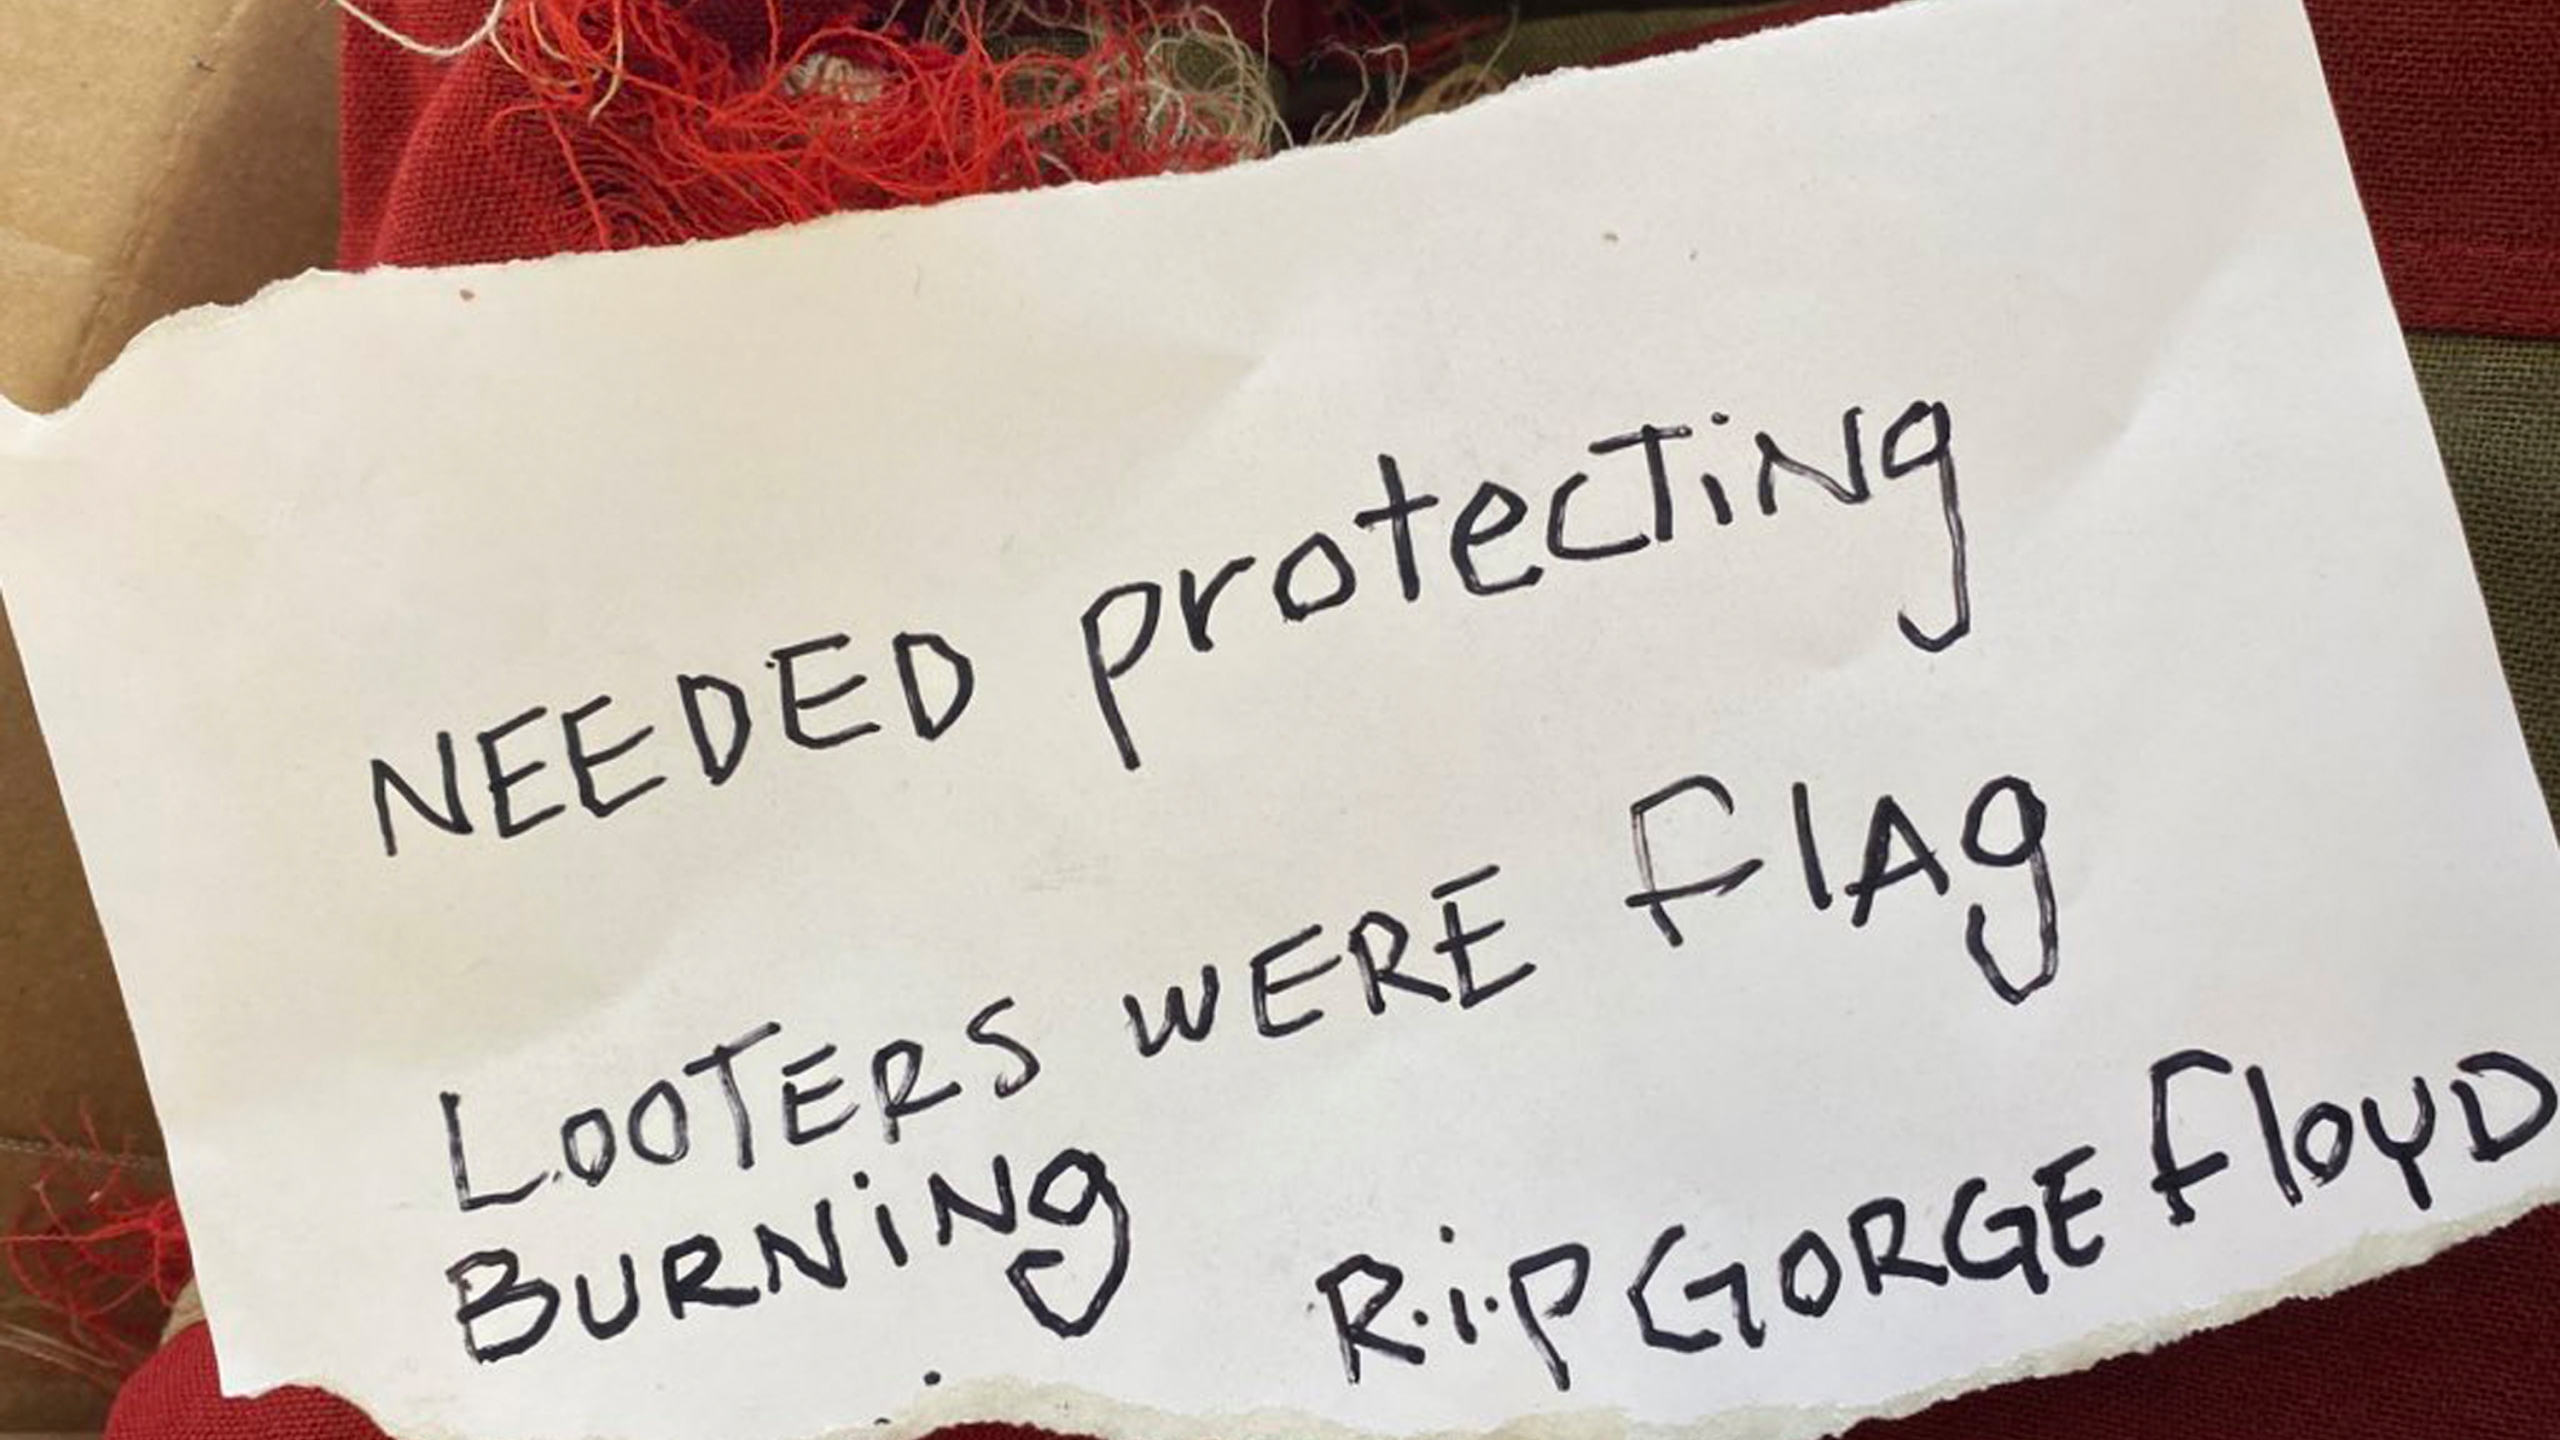 This photo provided by KRNV journalist Kenzie Margiott shows a note addressed to Margiott and a flag from a World War II